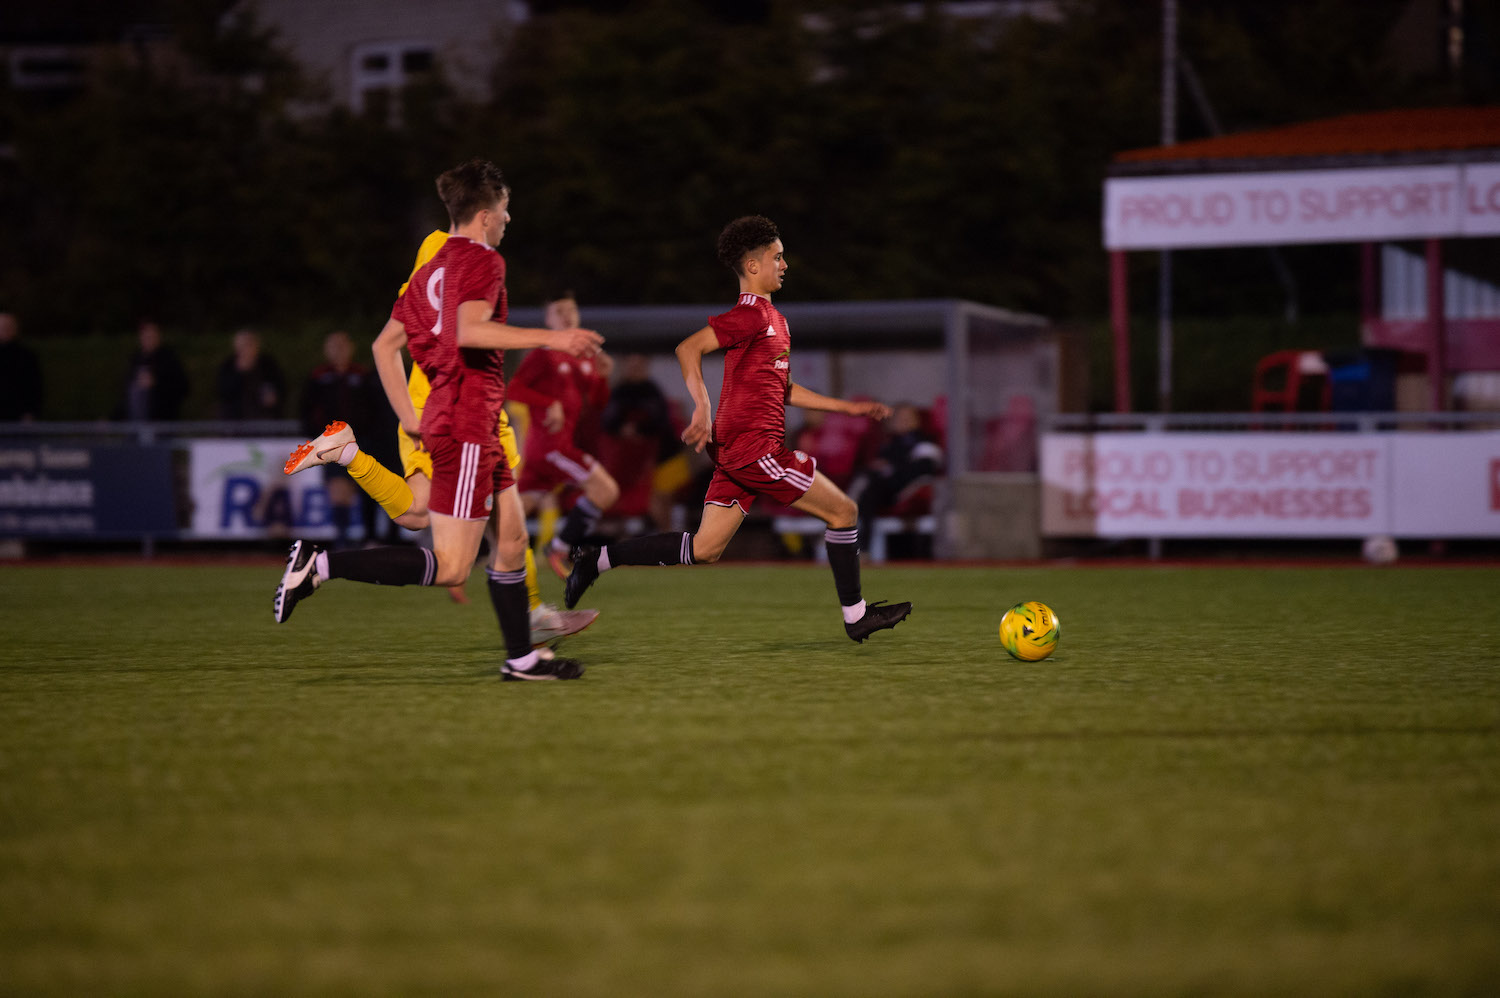 Read the full article - HIGHLIGHTS: U18's 3-0 South Park [H] – LEAGUE